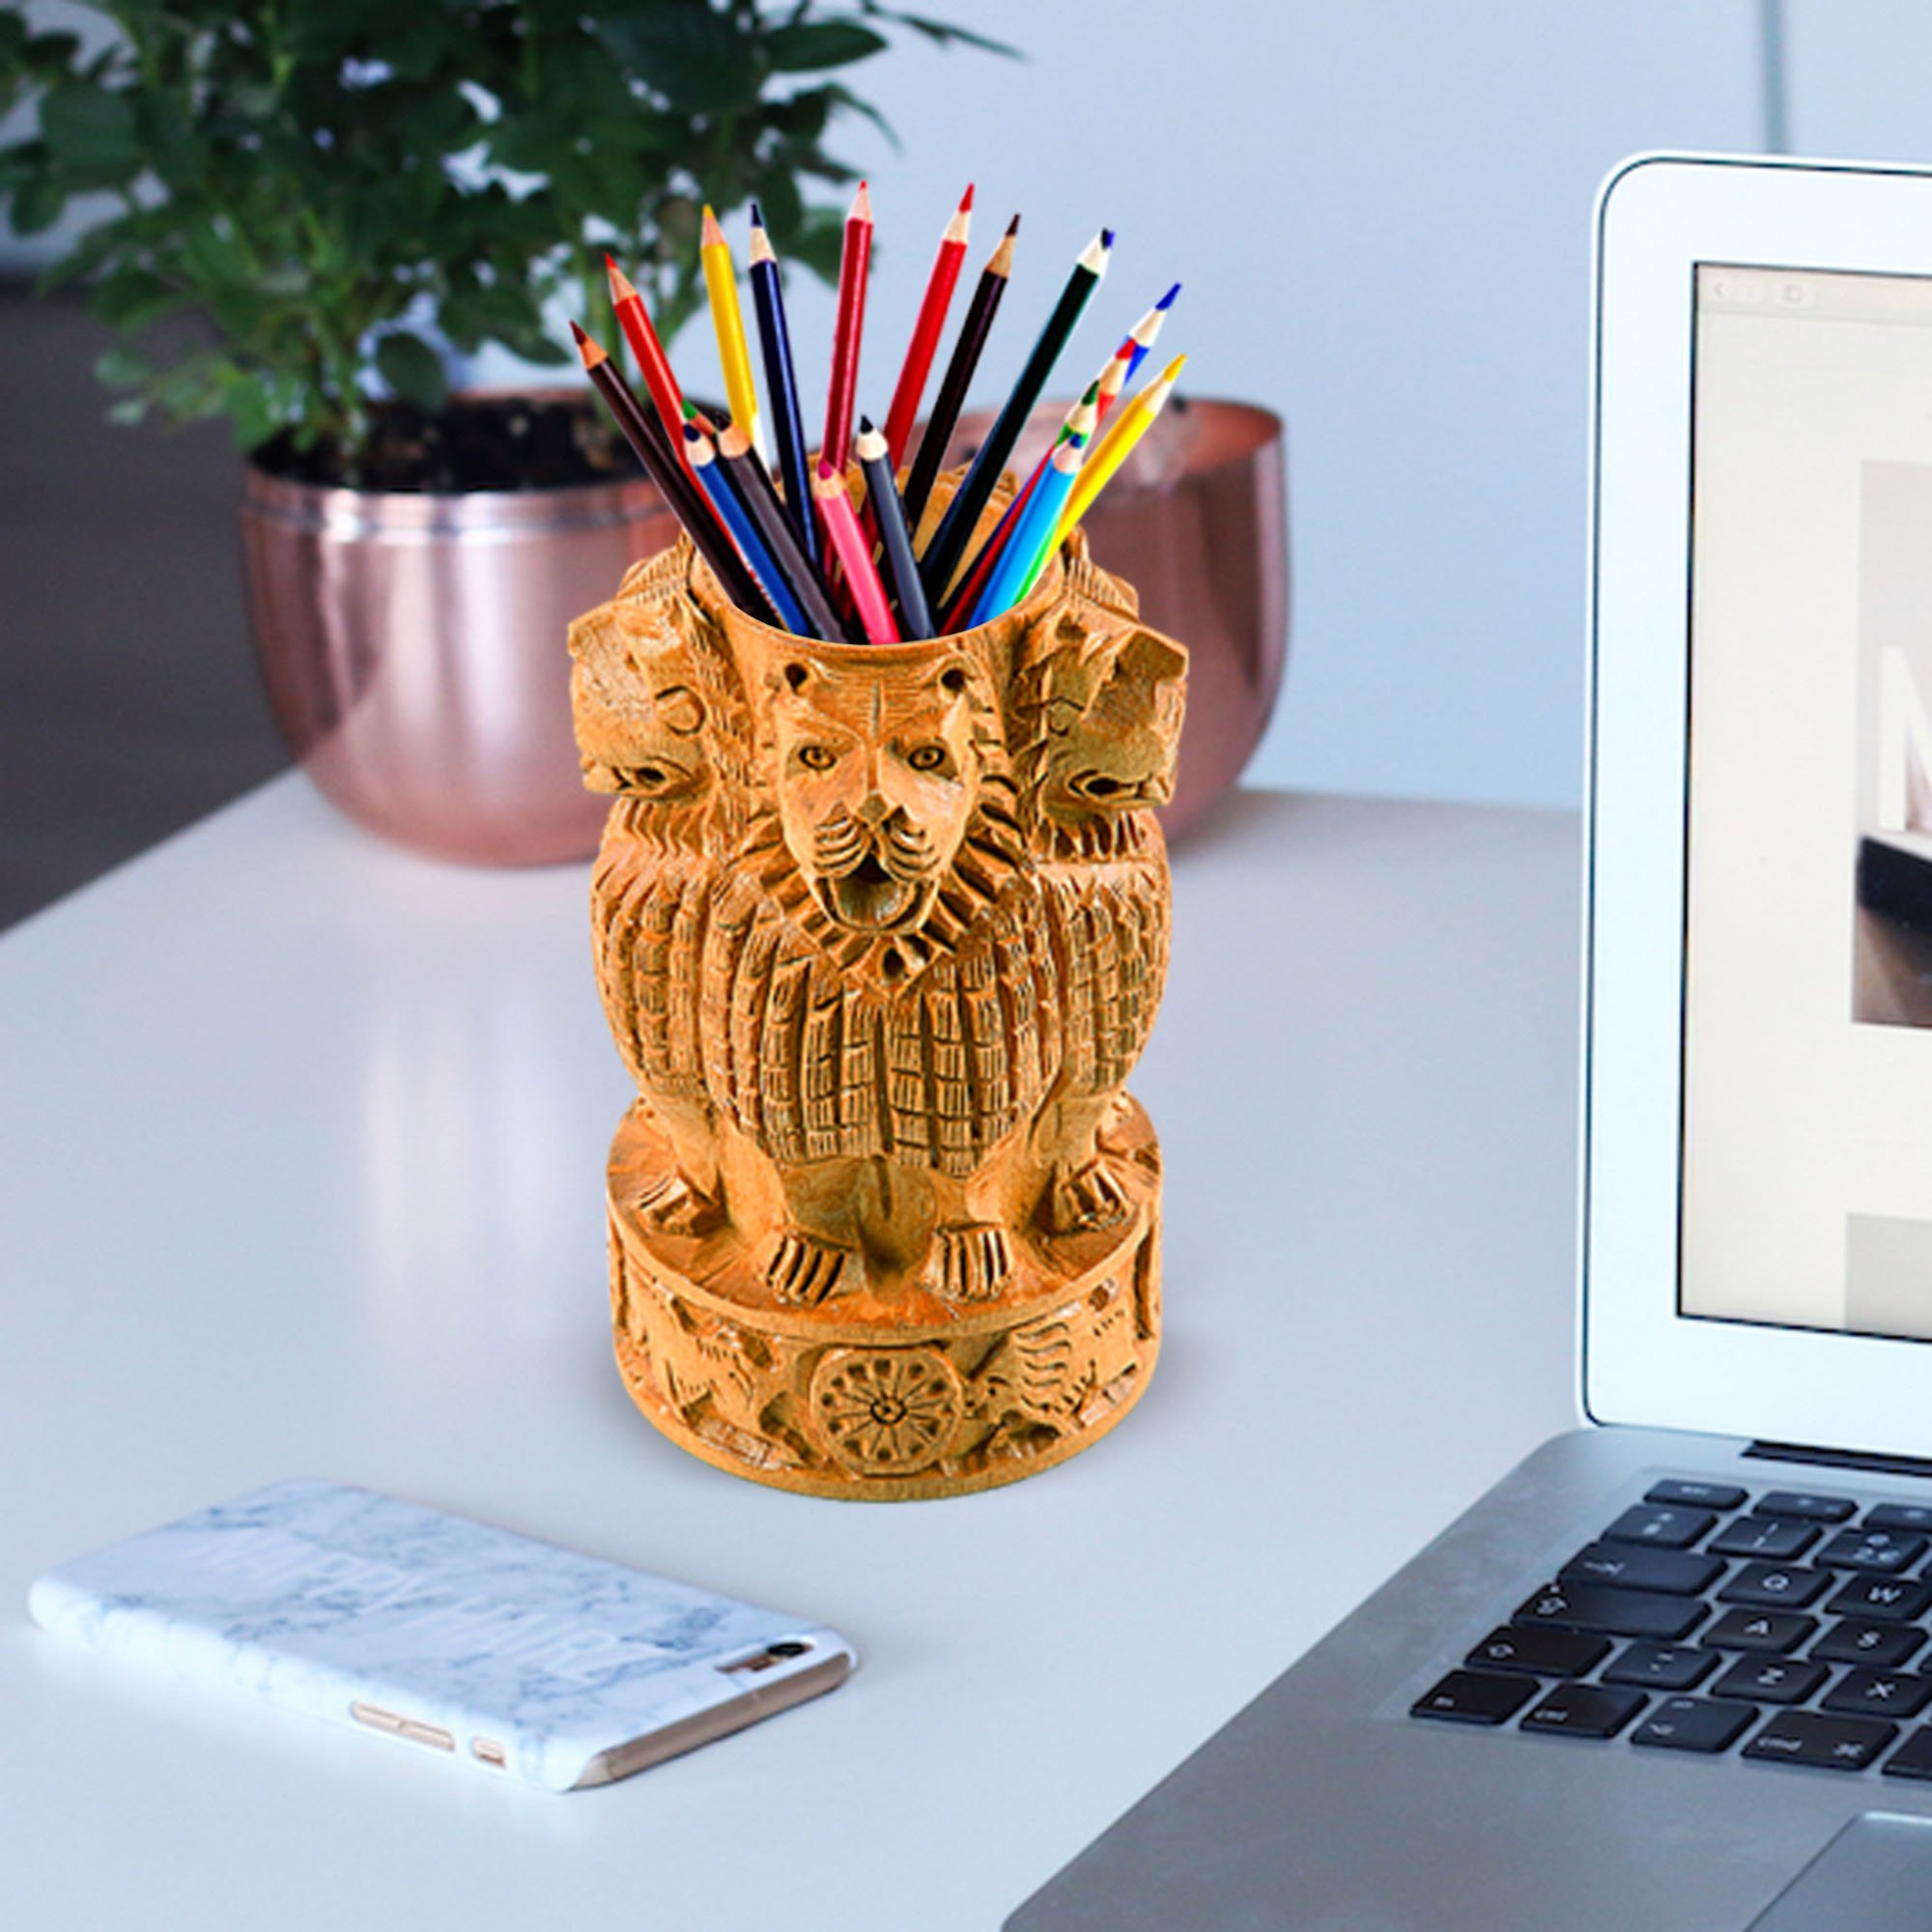 Fine Craft India Beautiful Natural Wood With Fine Carving Ashoka Emblem Shape Design Wooden Decorative 5'' |Pen| |Pencils| Box Stand Case Organizers Holder For |Desk| Notebook